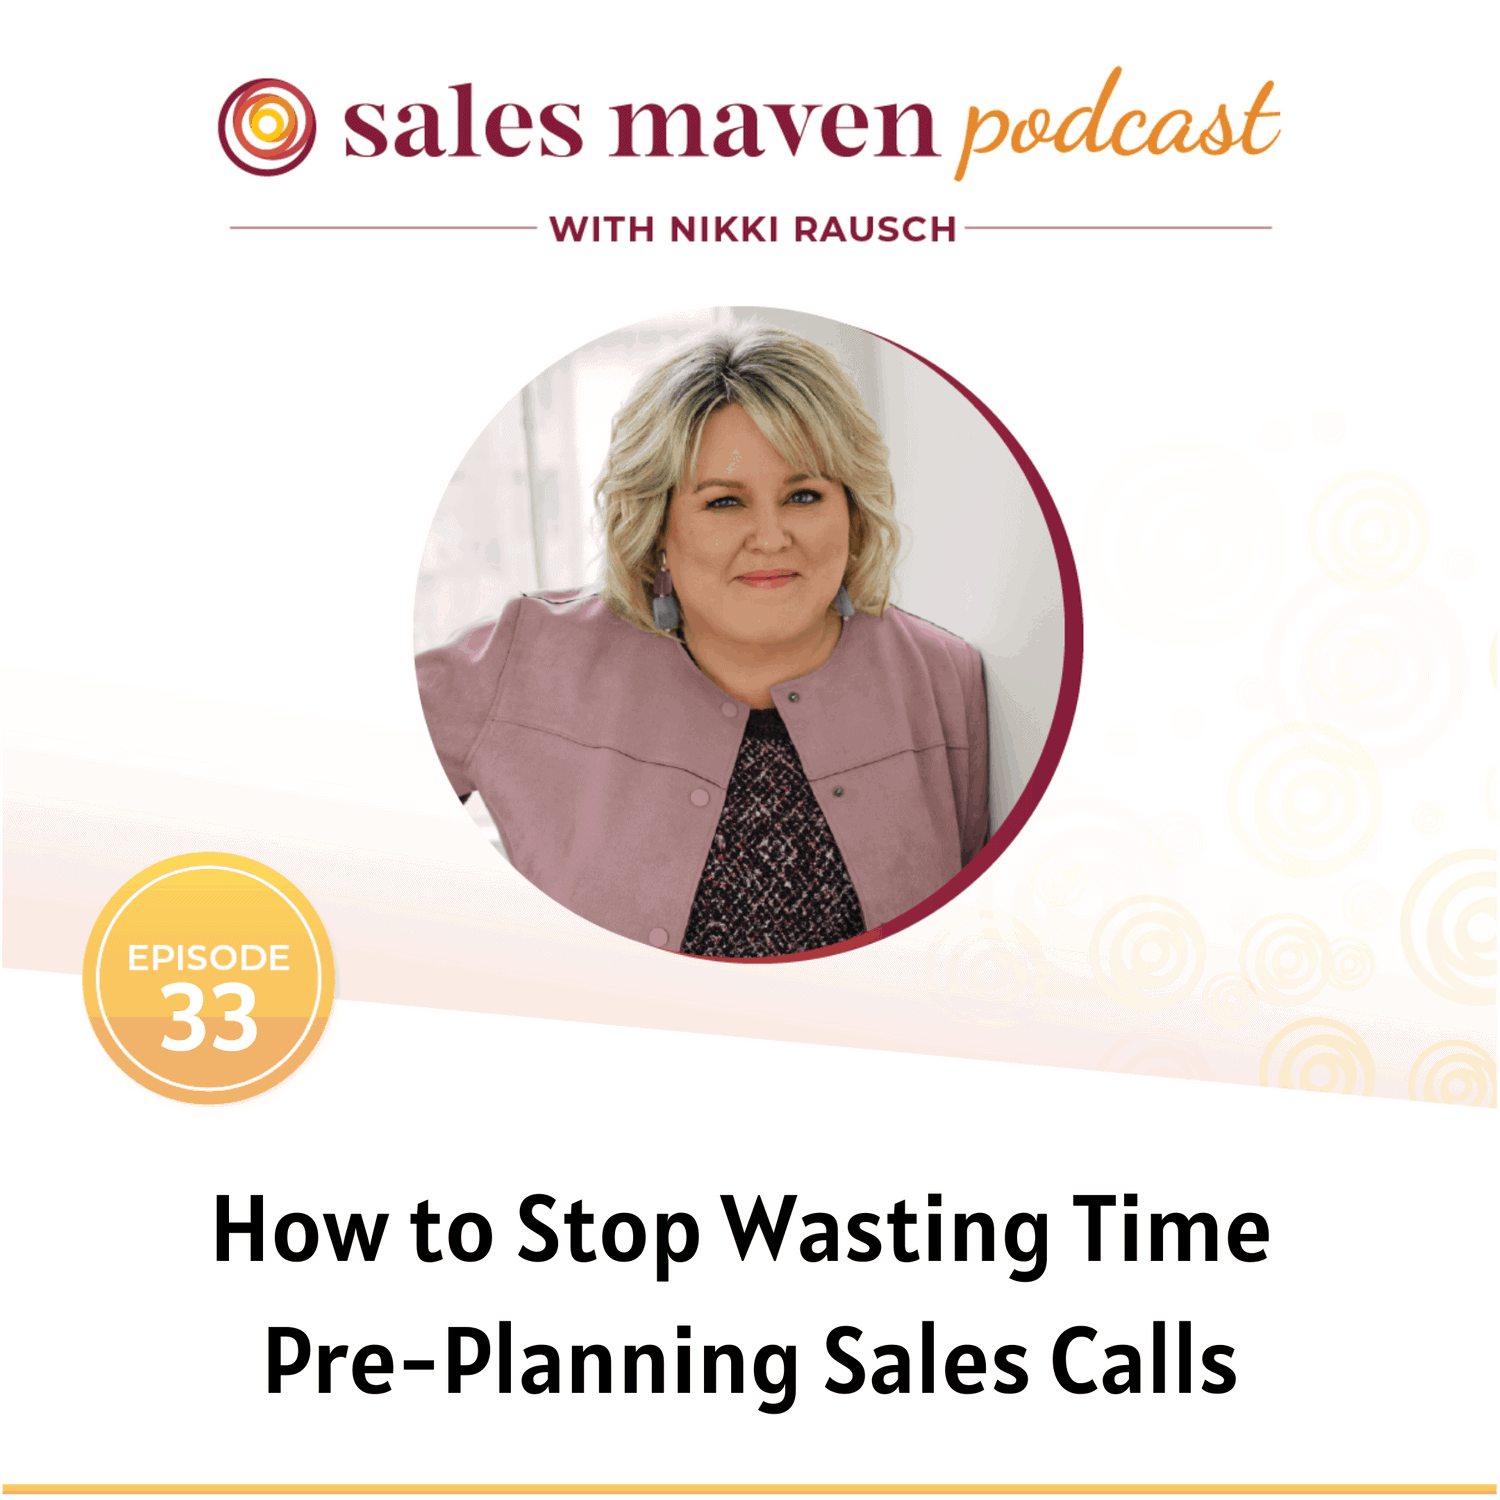 How to Stop Wasting Time Pre-Planning Sales Calls Podcast art with Nikki Rausch